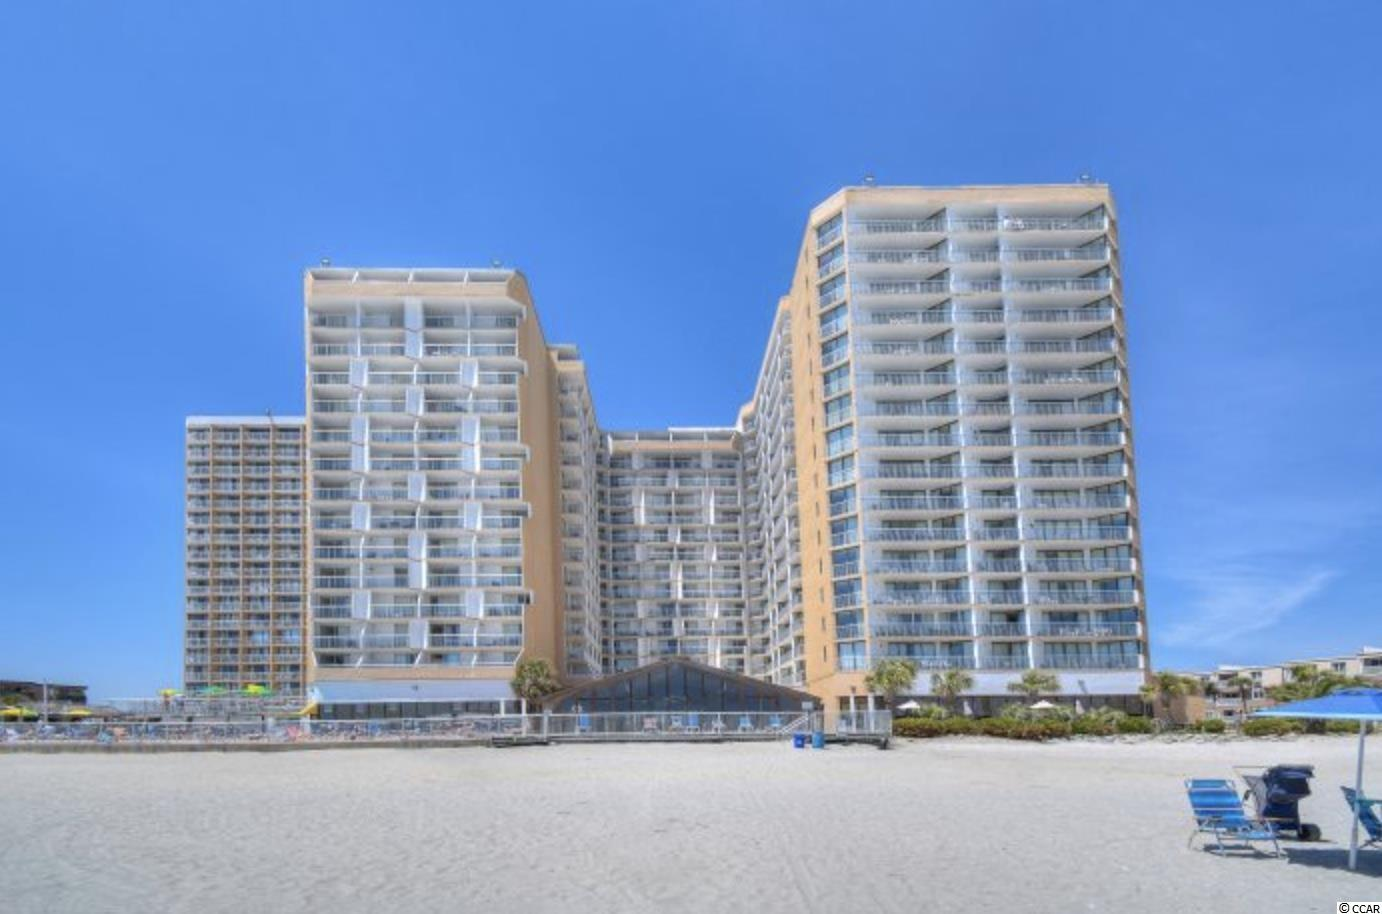 This efficiency ocean view condo is located at Sands Ocean Club in the desirable Arcadian Shores section of Myrtle Beach. The private balcony has expansive views of the SC coast line. Sands OceanClub is home to the famous Ocean Annie's and has many amenities for your family to enjoy. This unit has a 2 bedroom 2 bath lock out that can be purchased separately.